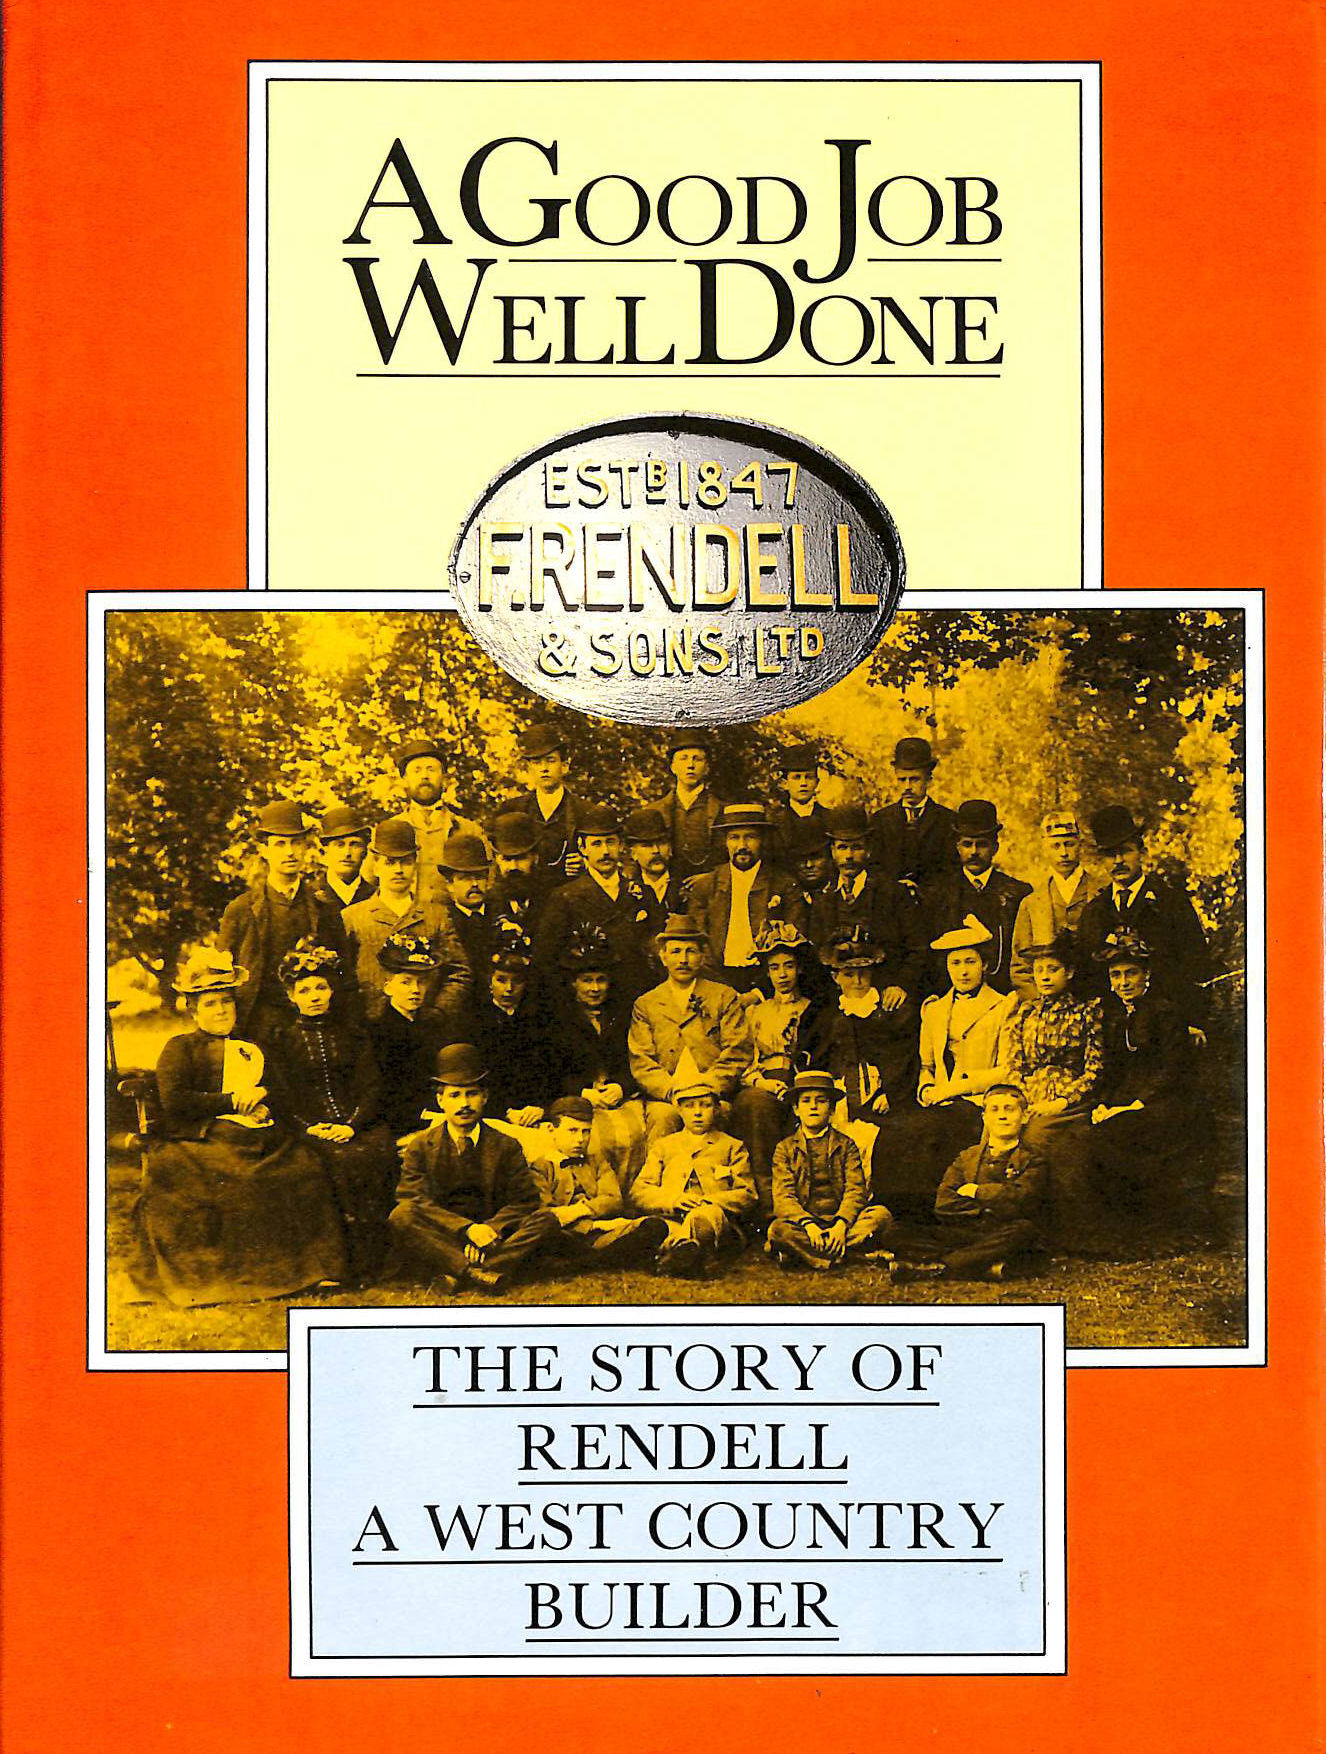 Image for A Good job well done: The story of Rendell, a West country builder